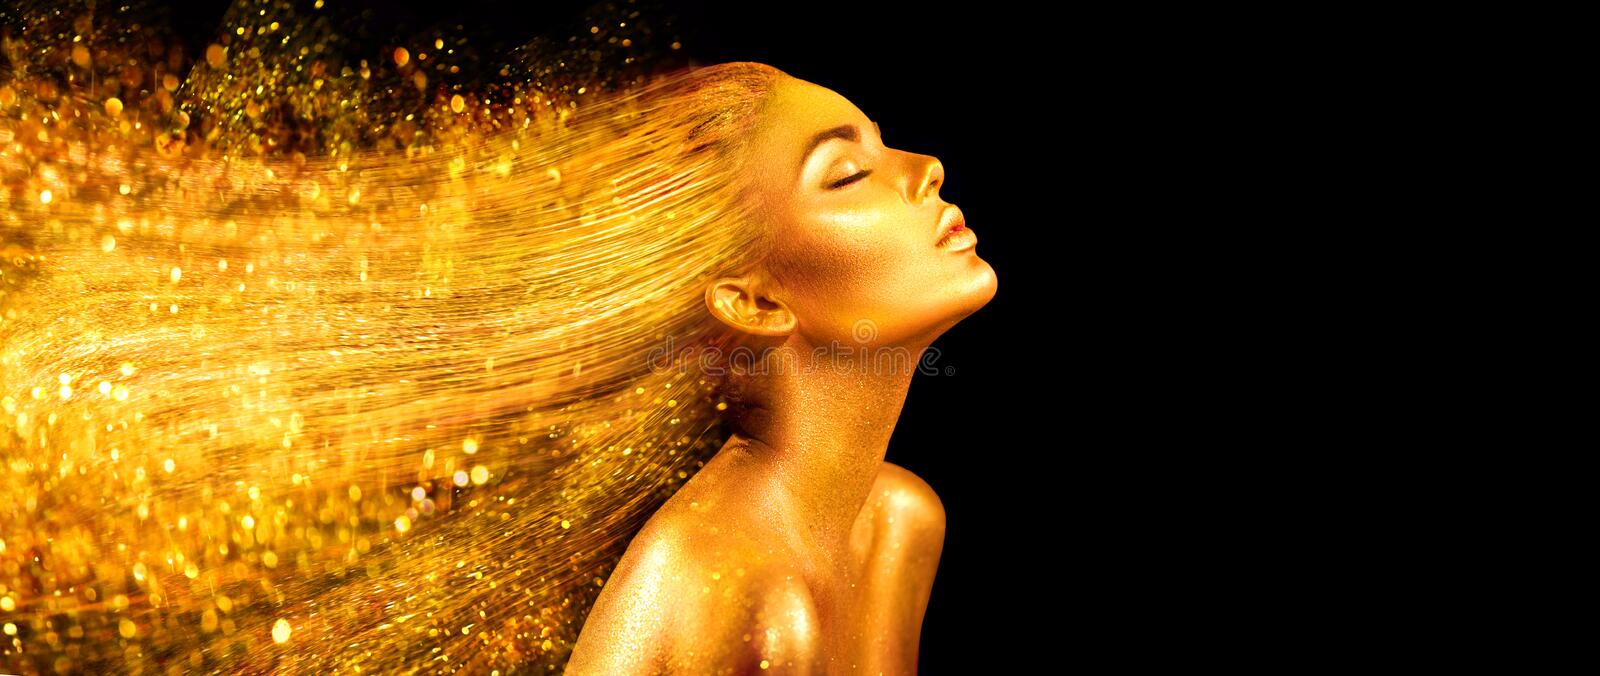 Download Fashion Model Woman In Golden Bright Sparkles. Girl With Golden Skin And Hair Portrait Closeup Stock Image - Image of luster, artist: 113010779